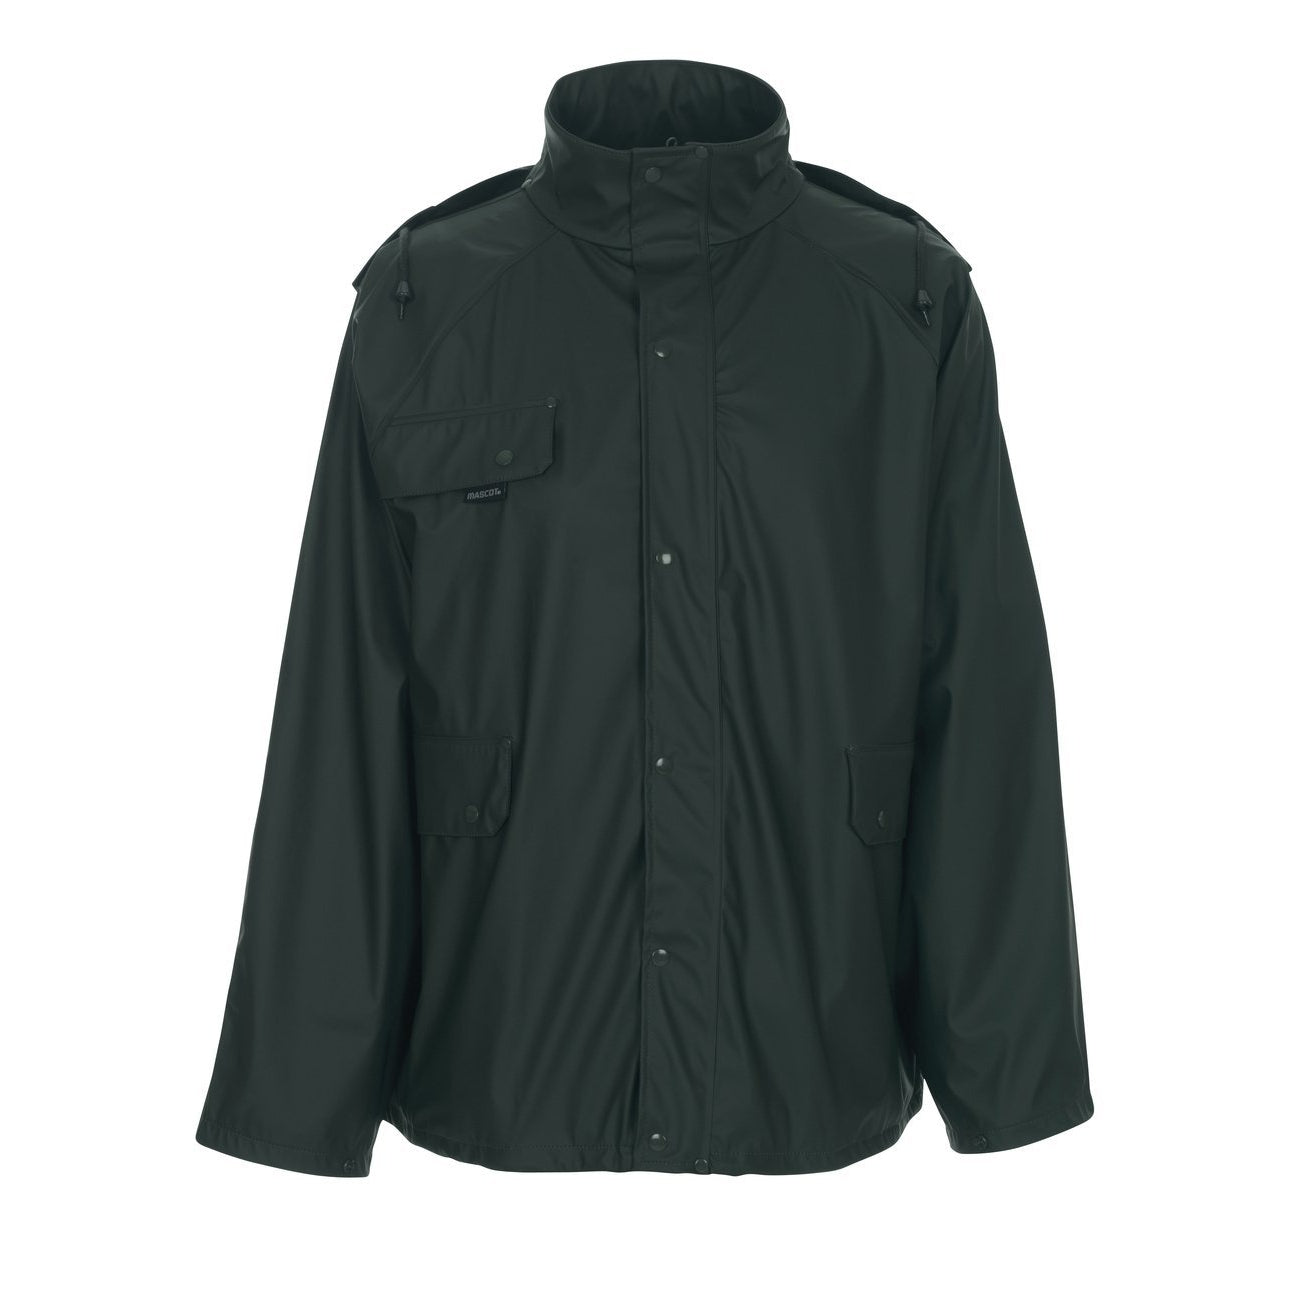 Mascot Waterford Aqua Rain Jacket